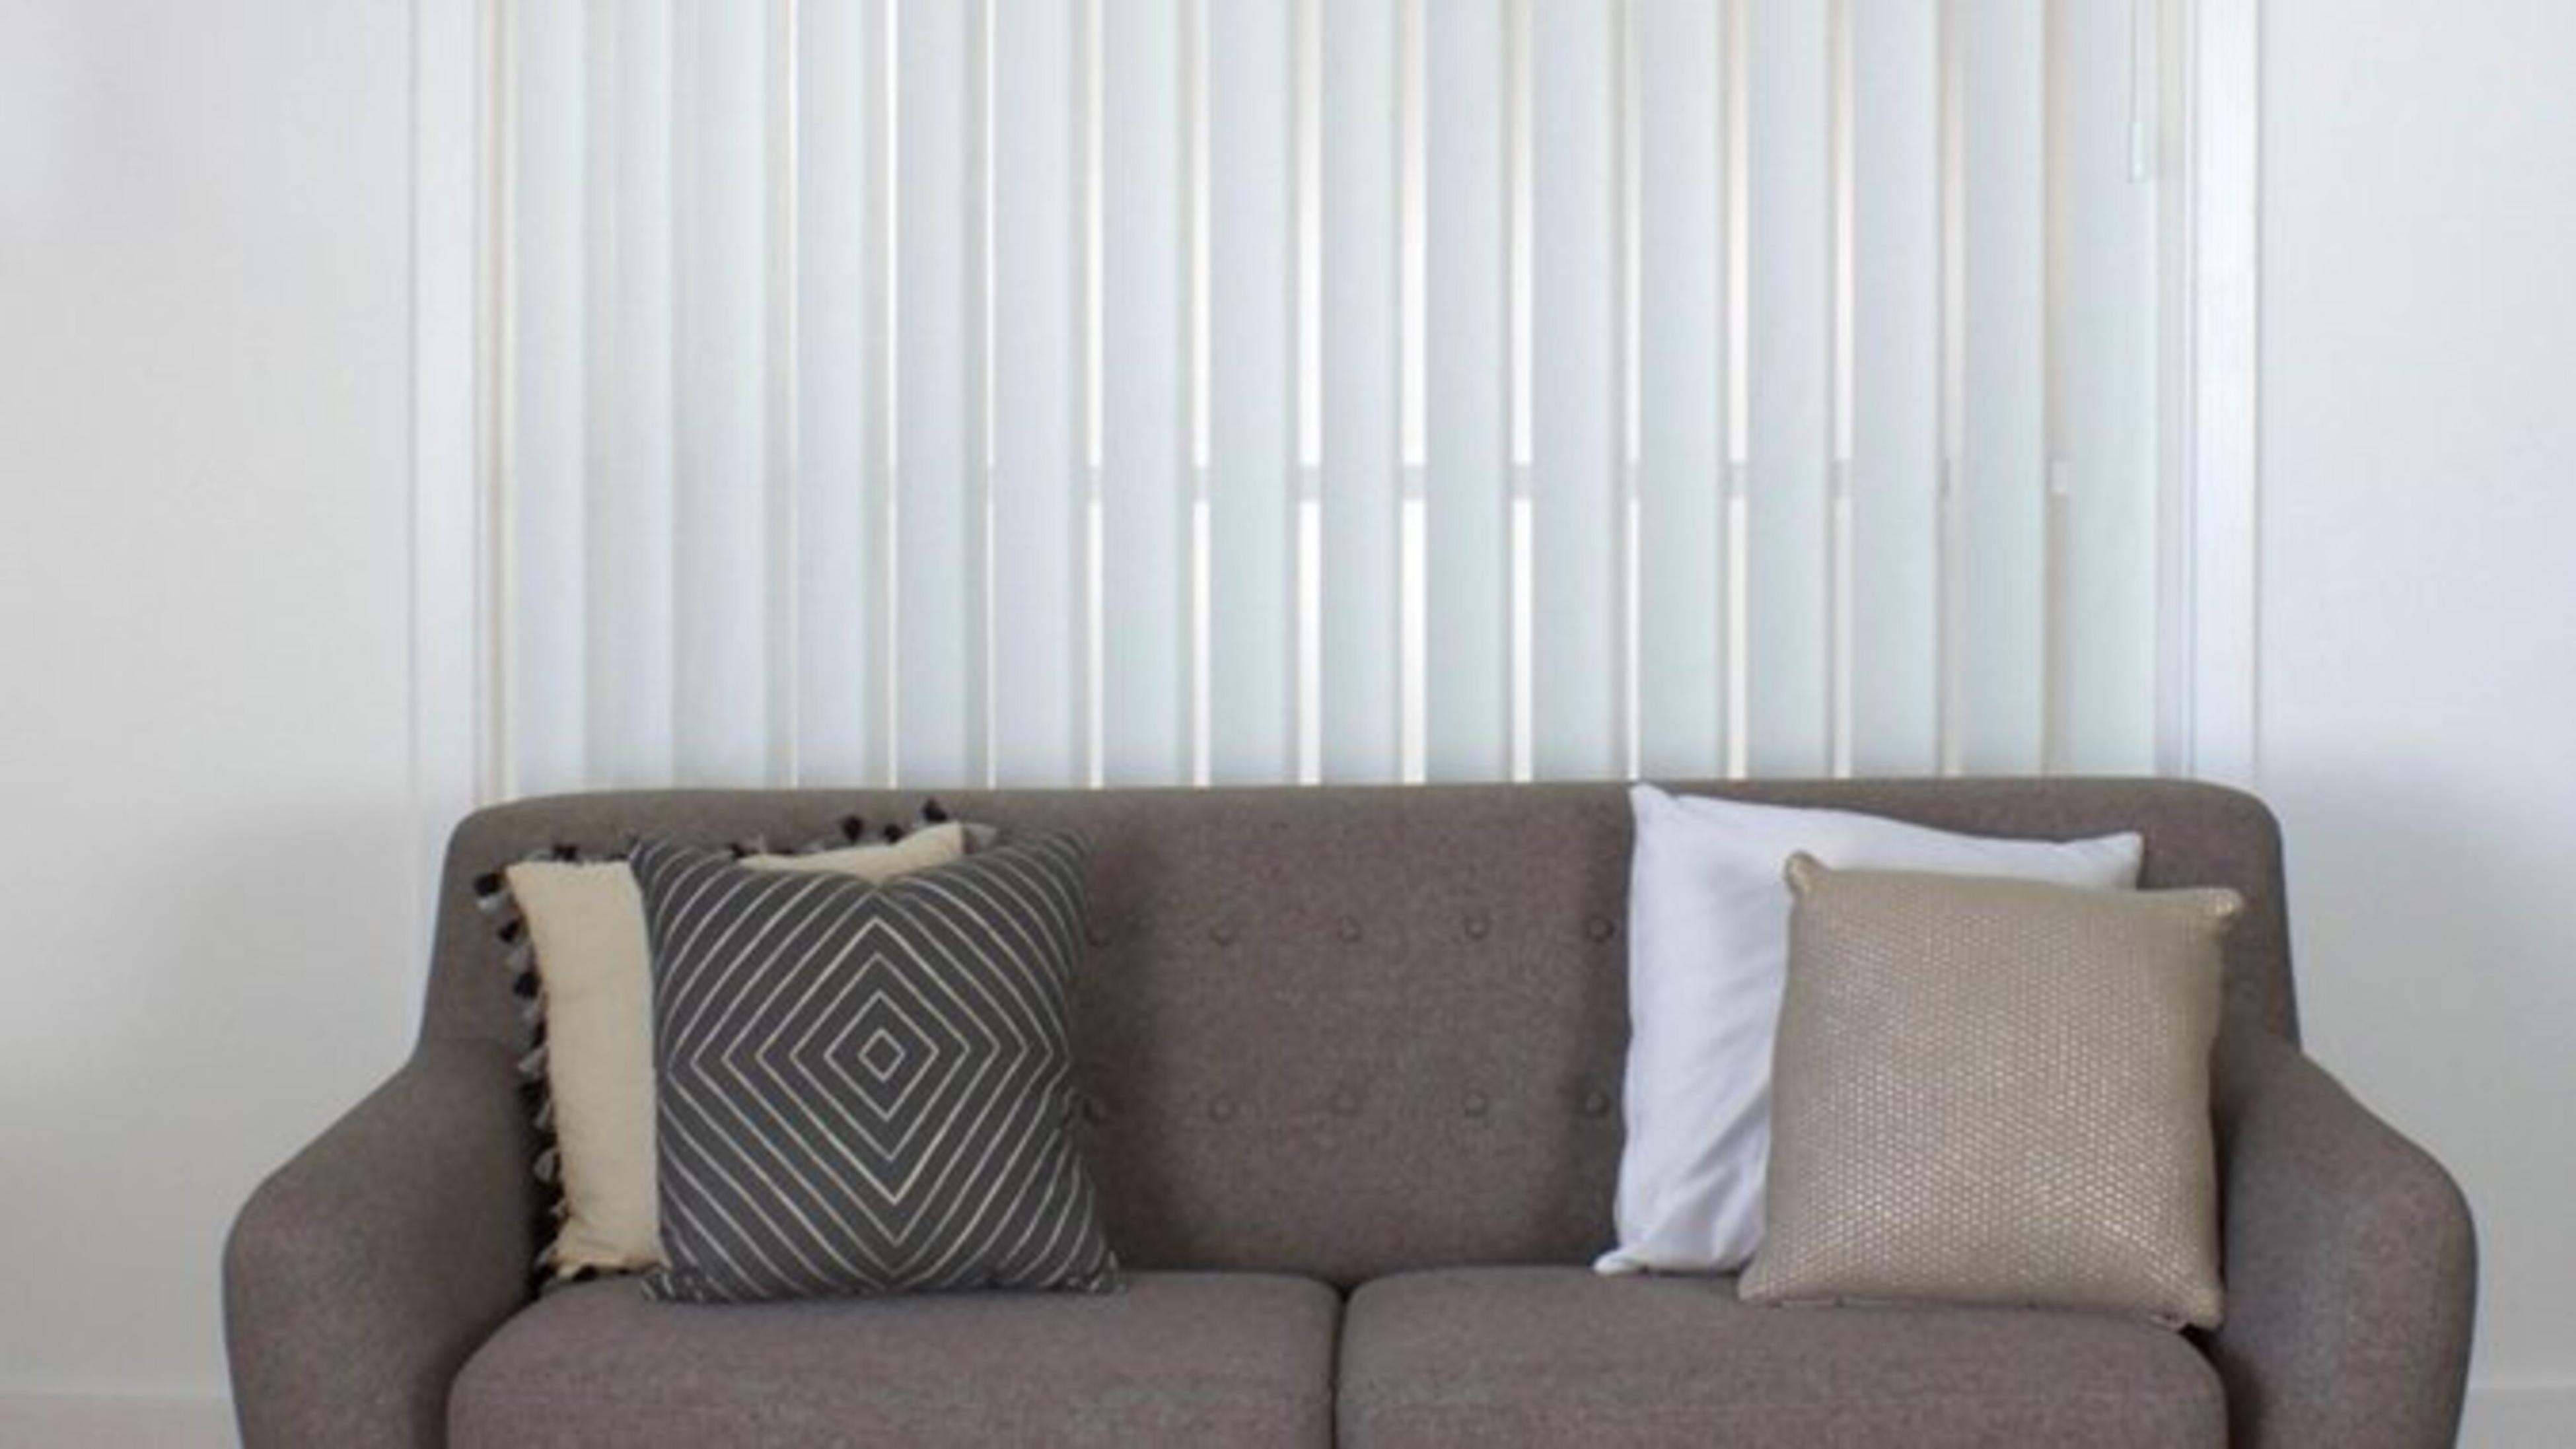 White vertical blinds behind a grey couch with cushions.